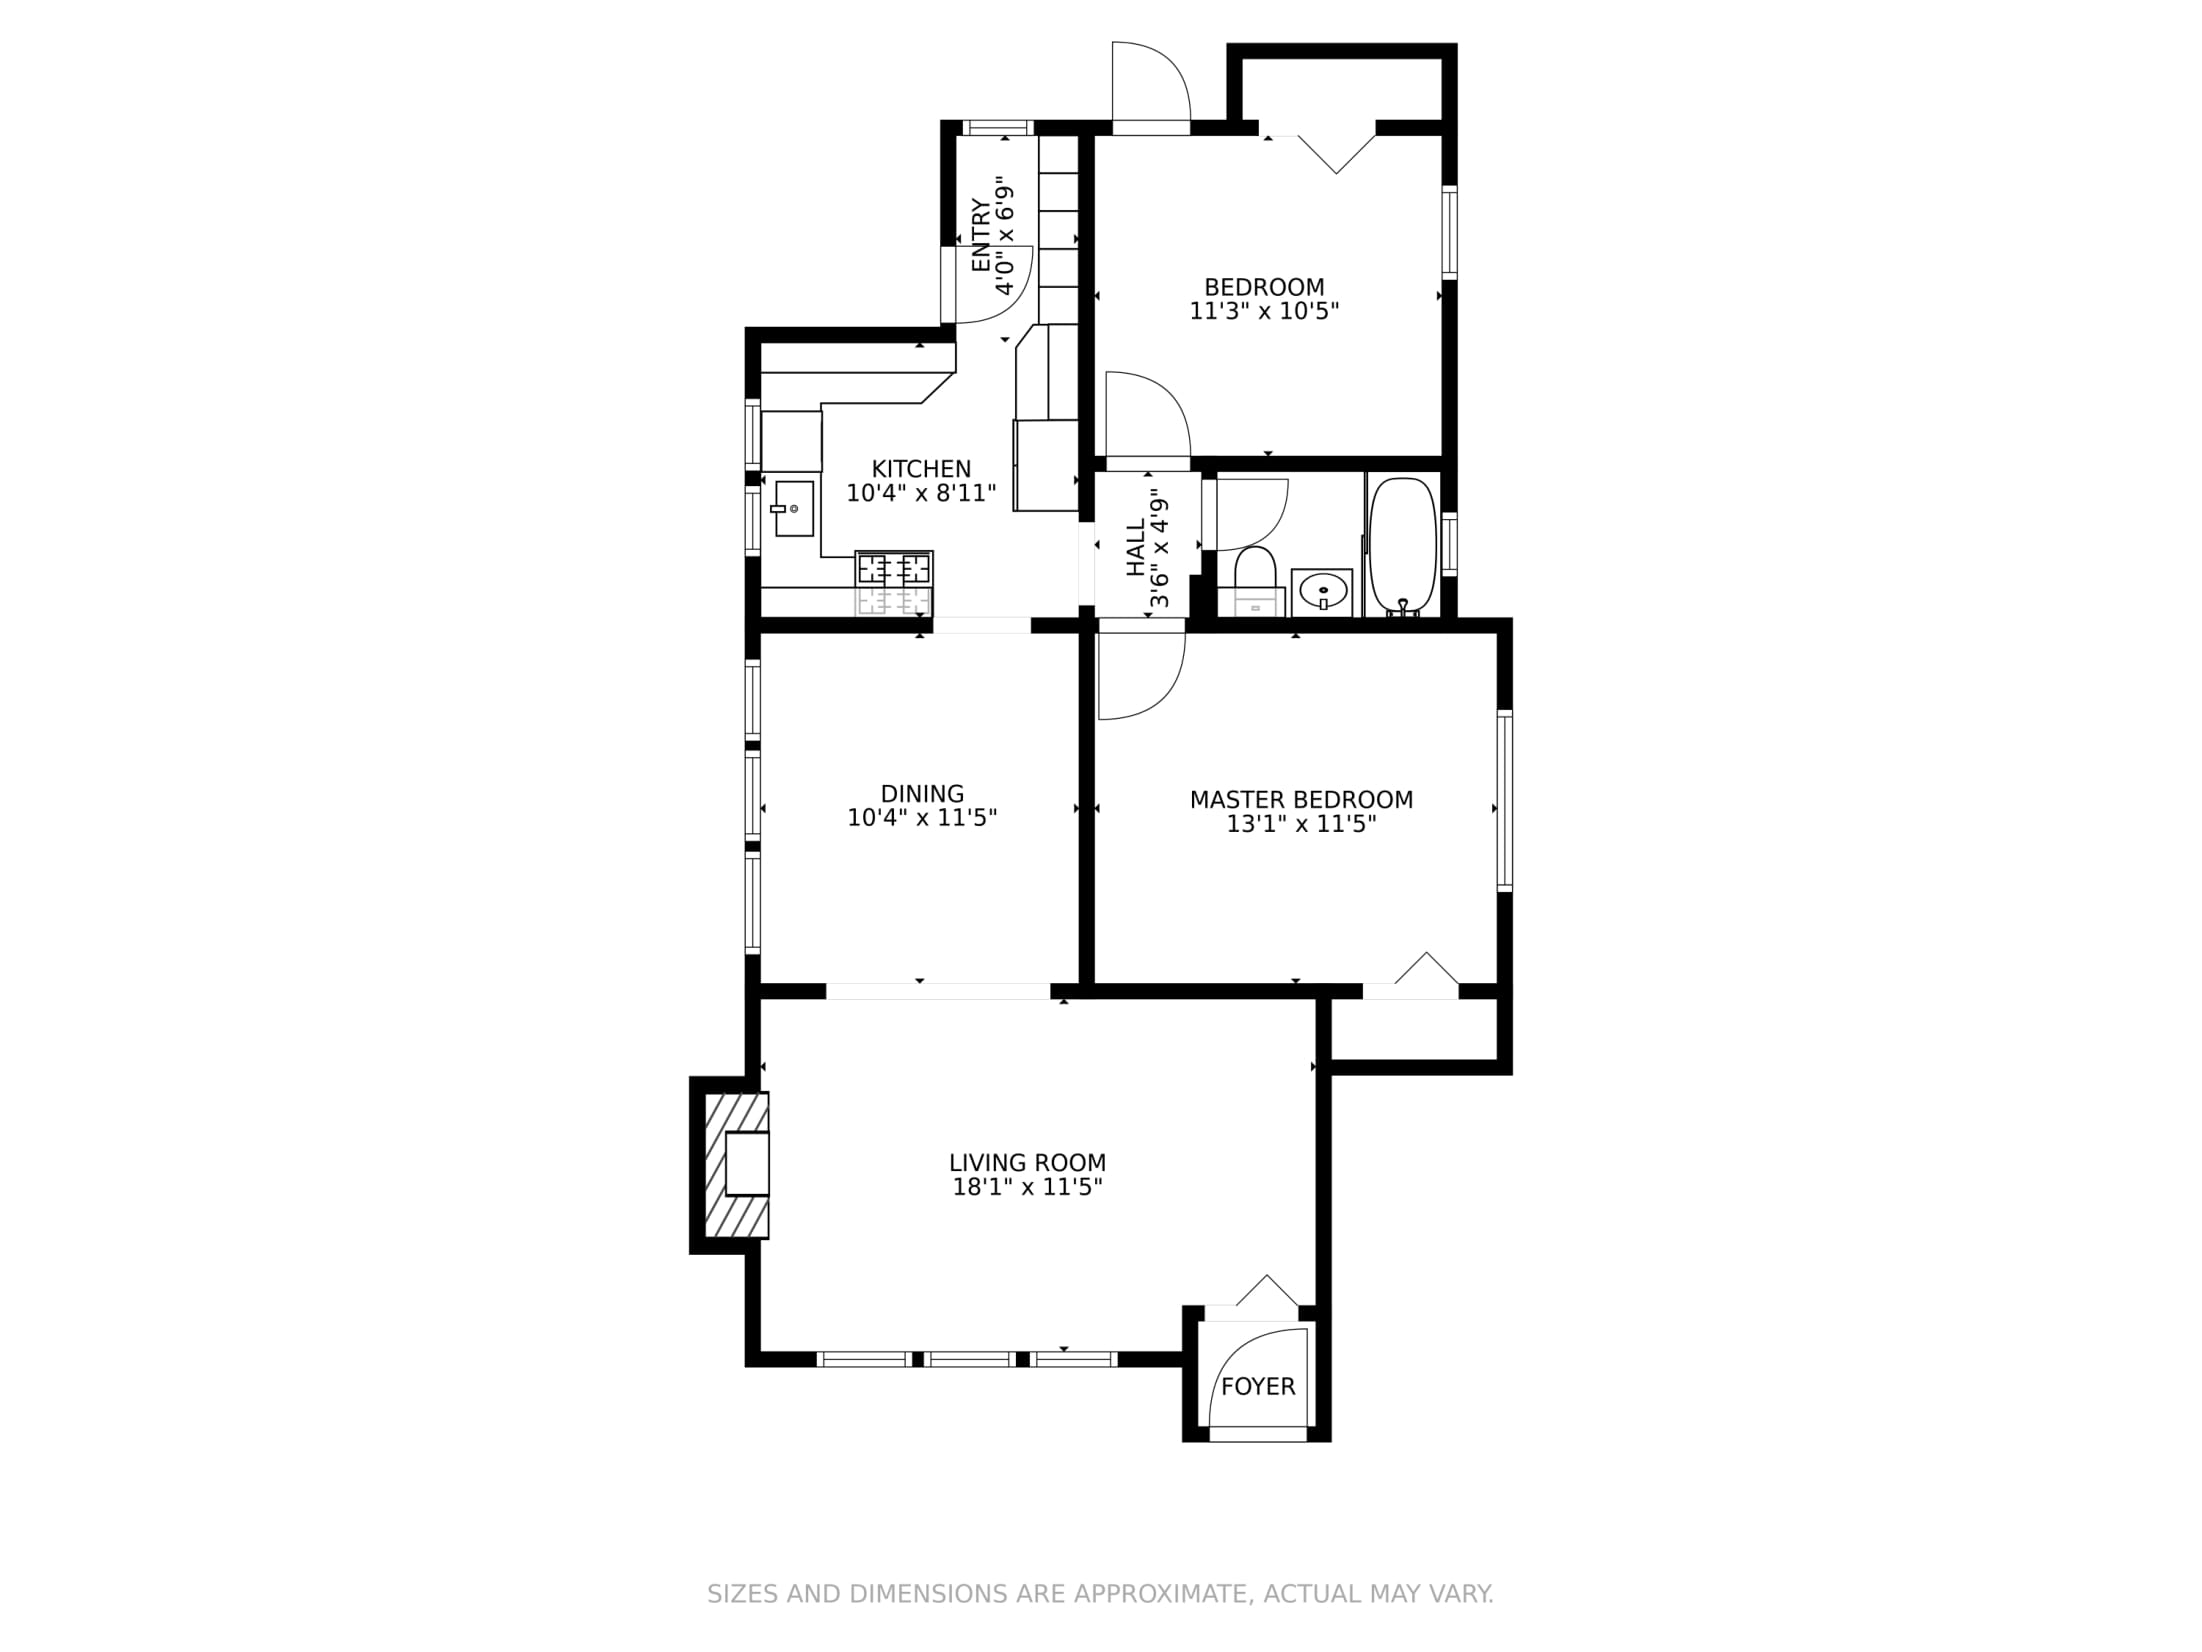 21-23 Newell Rd., Newton, MA - Floor Plan